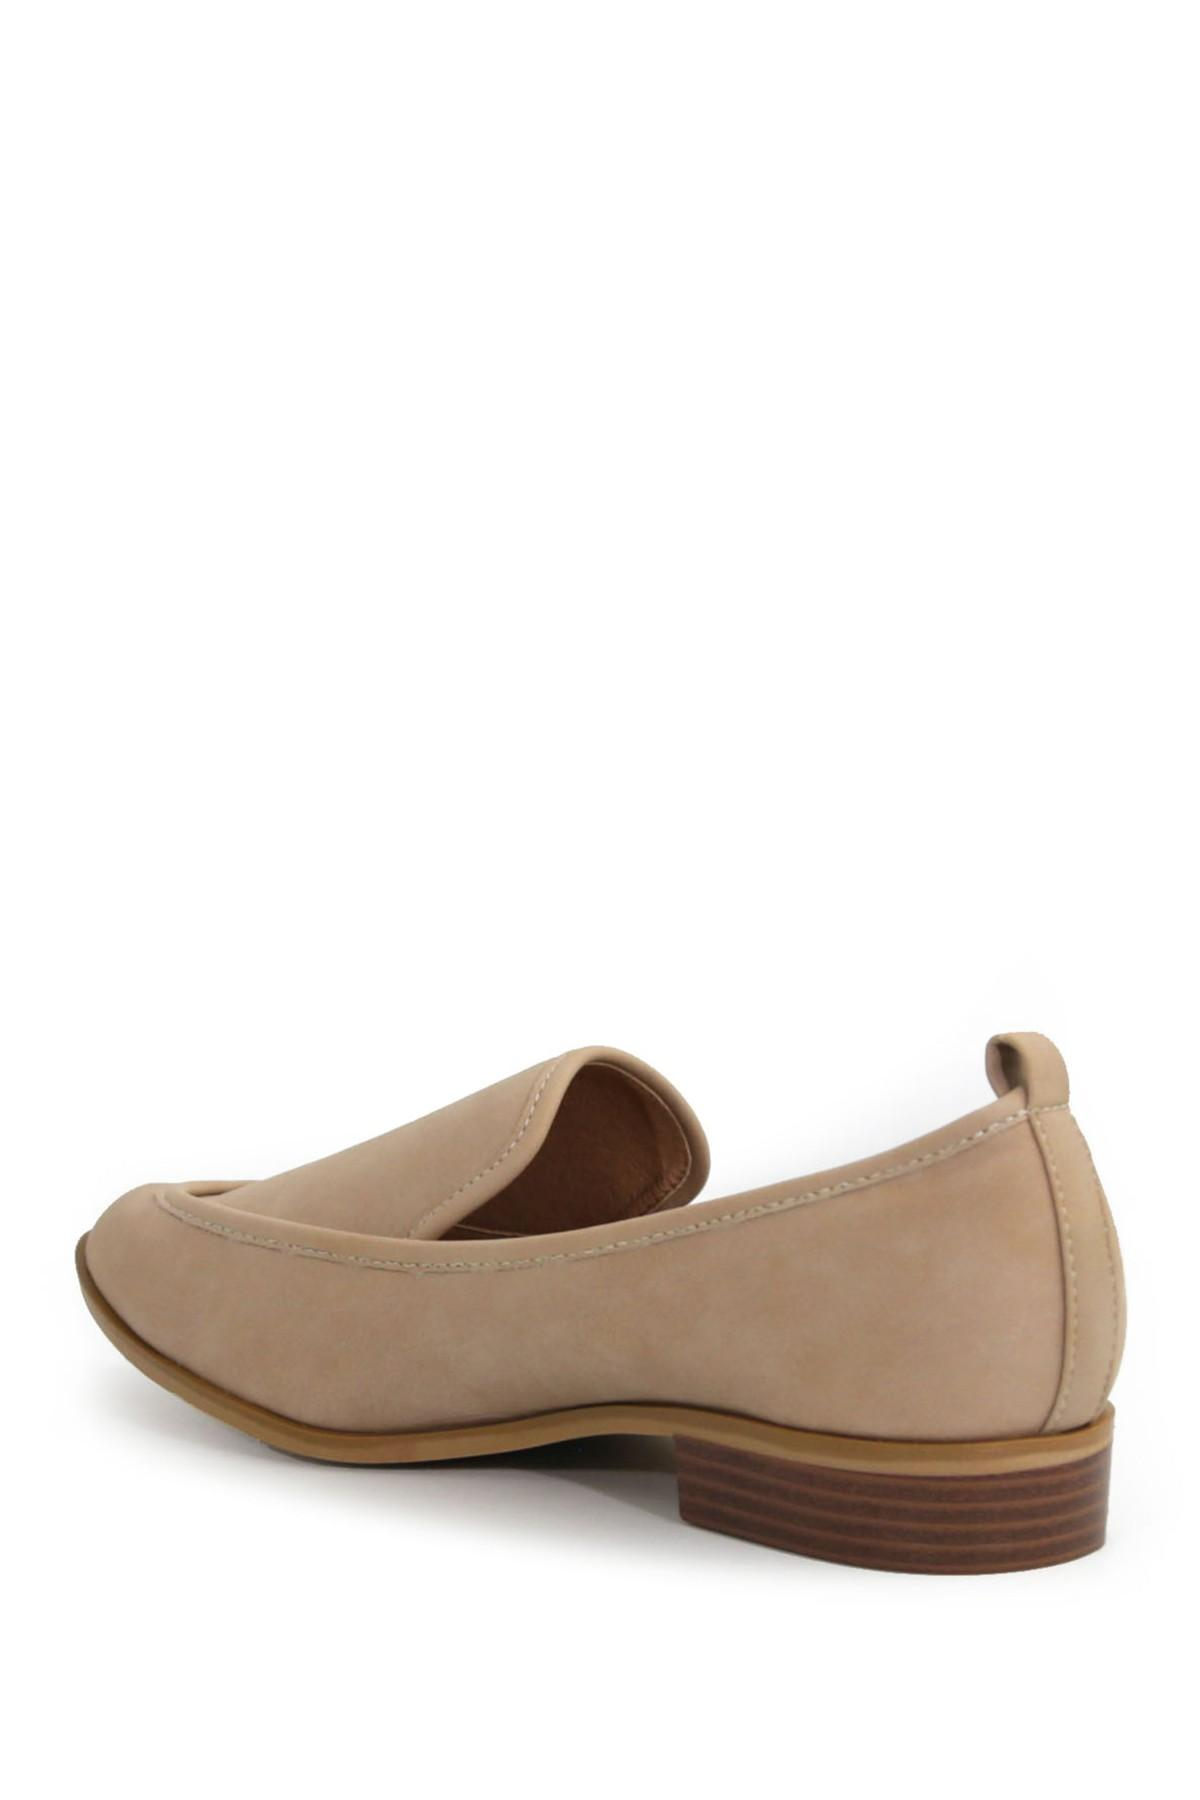 2c4d48514df Catherine Malandrino - Brown Westly Low Heel Loafer - Lyst. View fullscreen